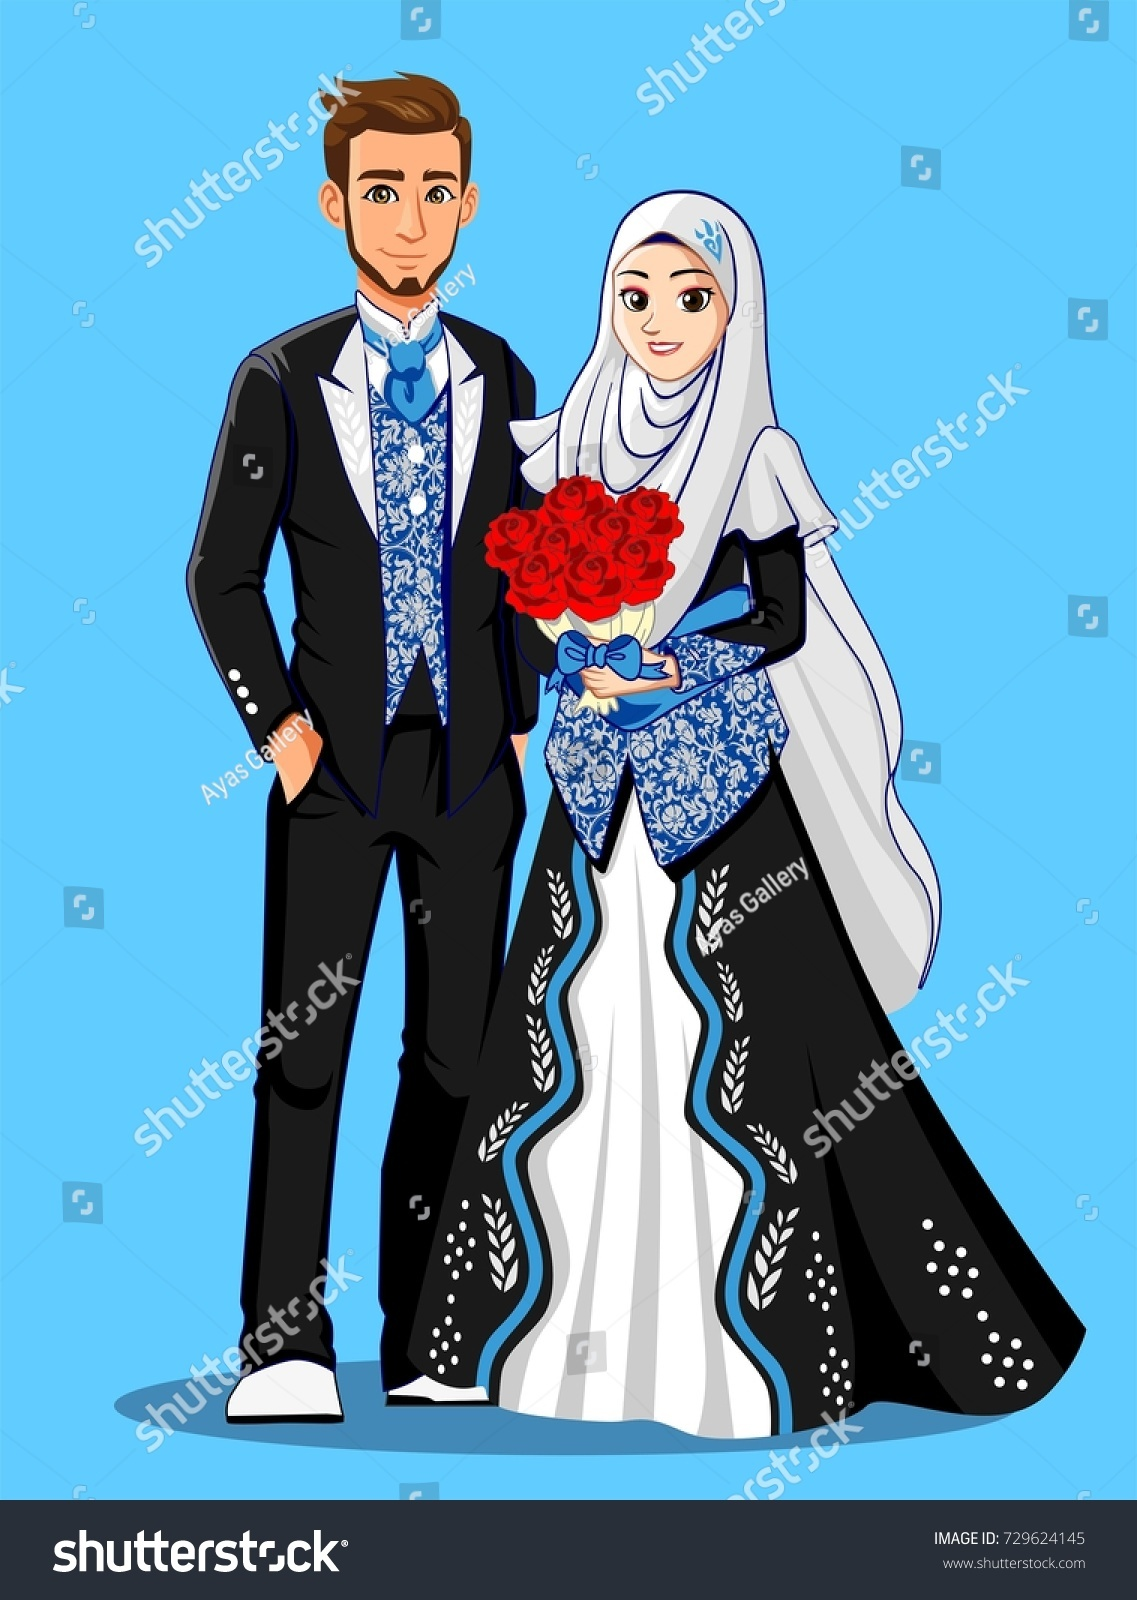 Muslim Wedding Couple Black Blue Suit Stock Vector HD (Royalty Free ...